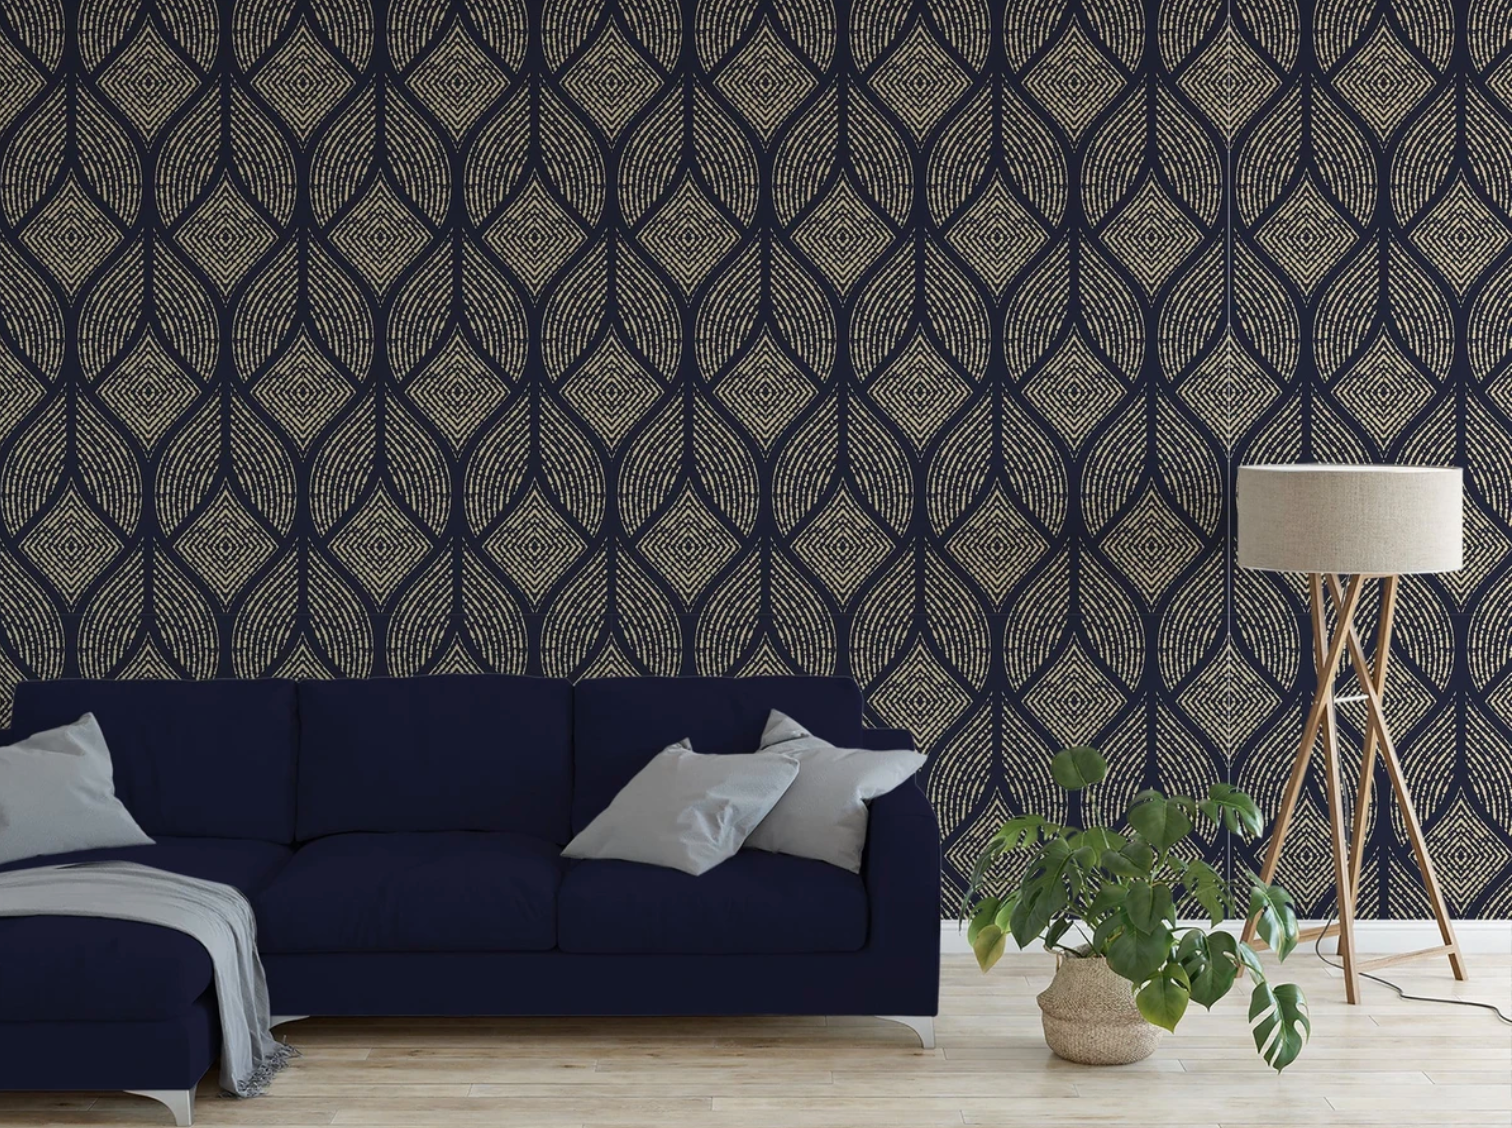 Flapper Inspired Peel and Stick Wallpaper